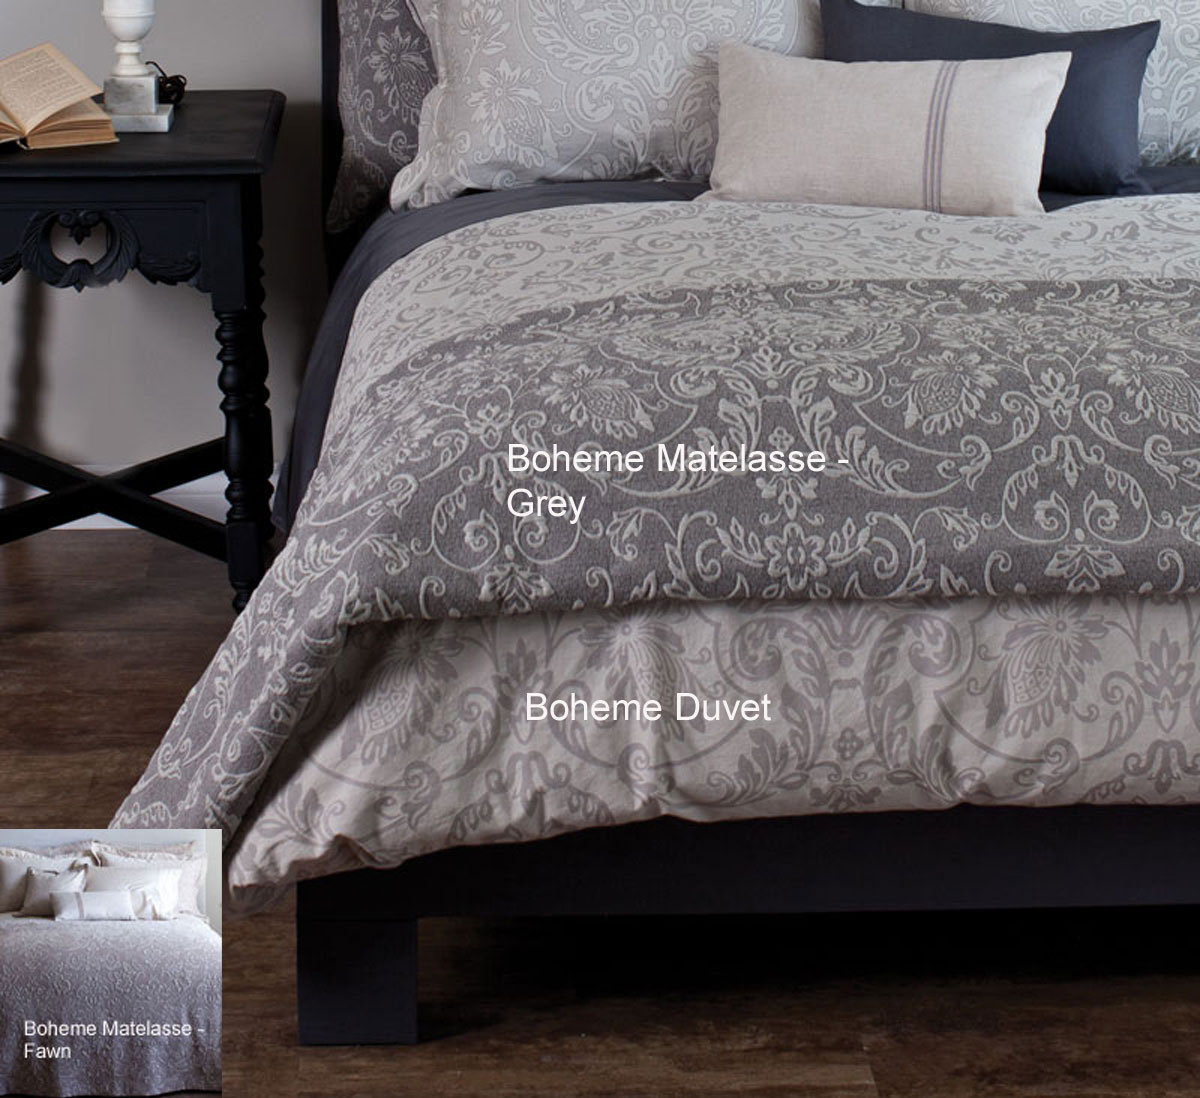 Boheme Matelasse by St. Geneve Luxury Bedding